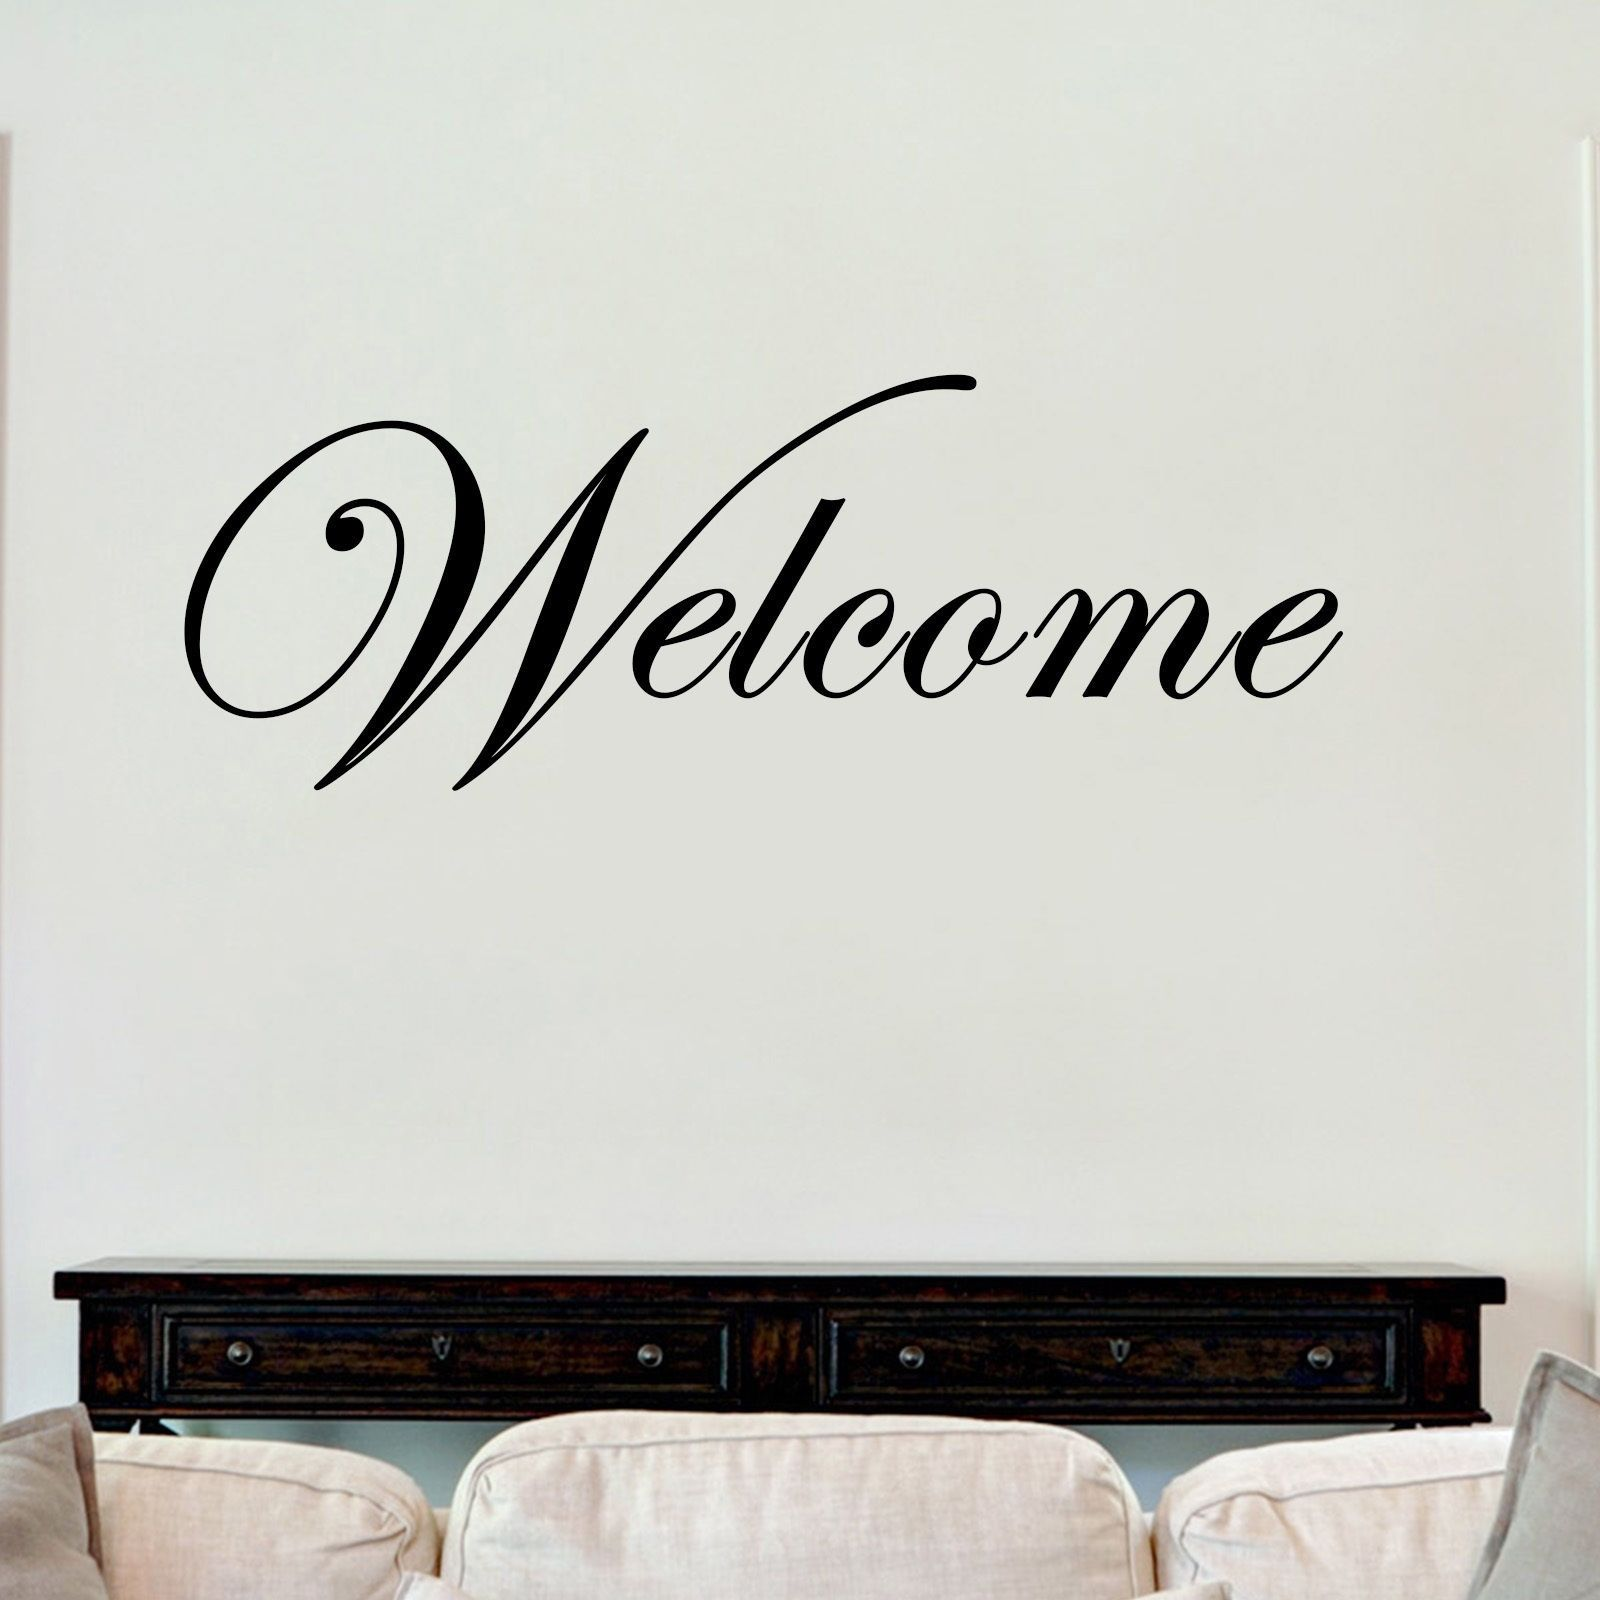 Welcome sticker vinyl decal decors wall quotes home house bedroom lounge hall the clothing shed